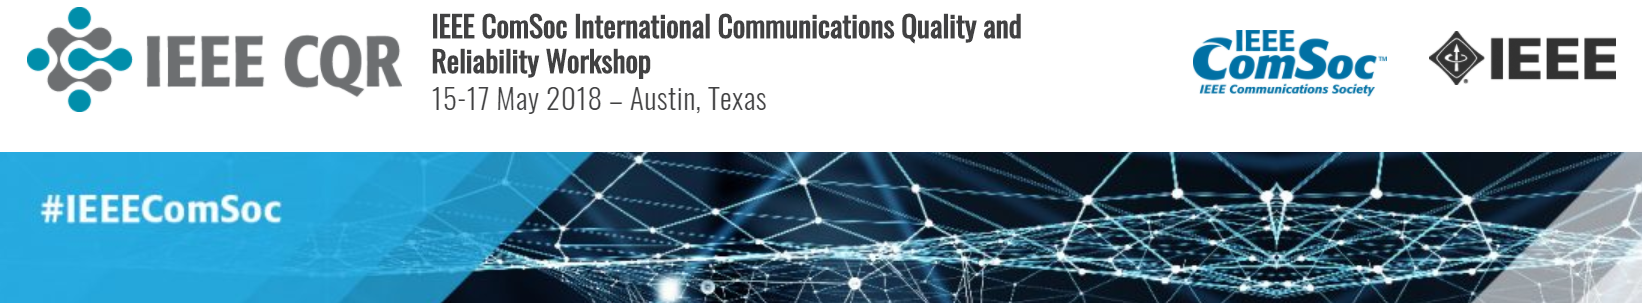 2018 IEEE International Workshop Technical Committee on Communications Quality and Reliability (CQR 2018)